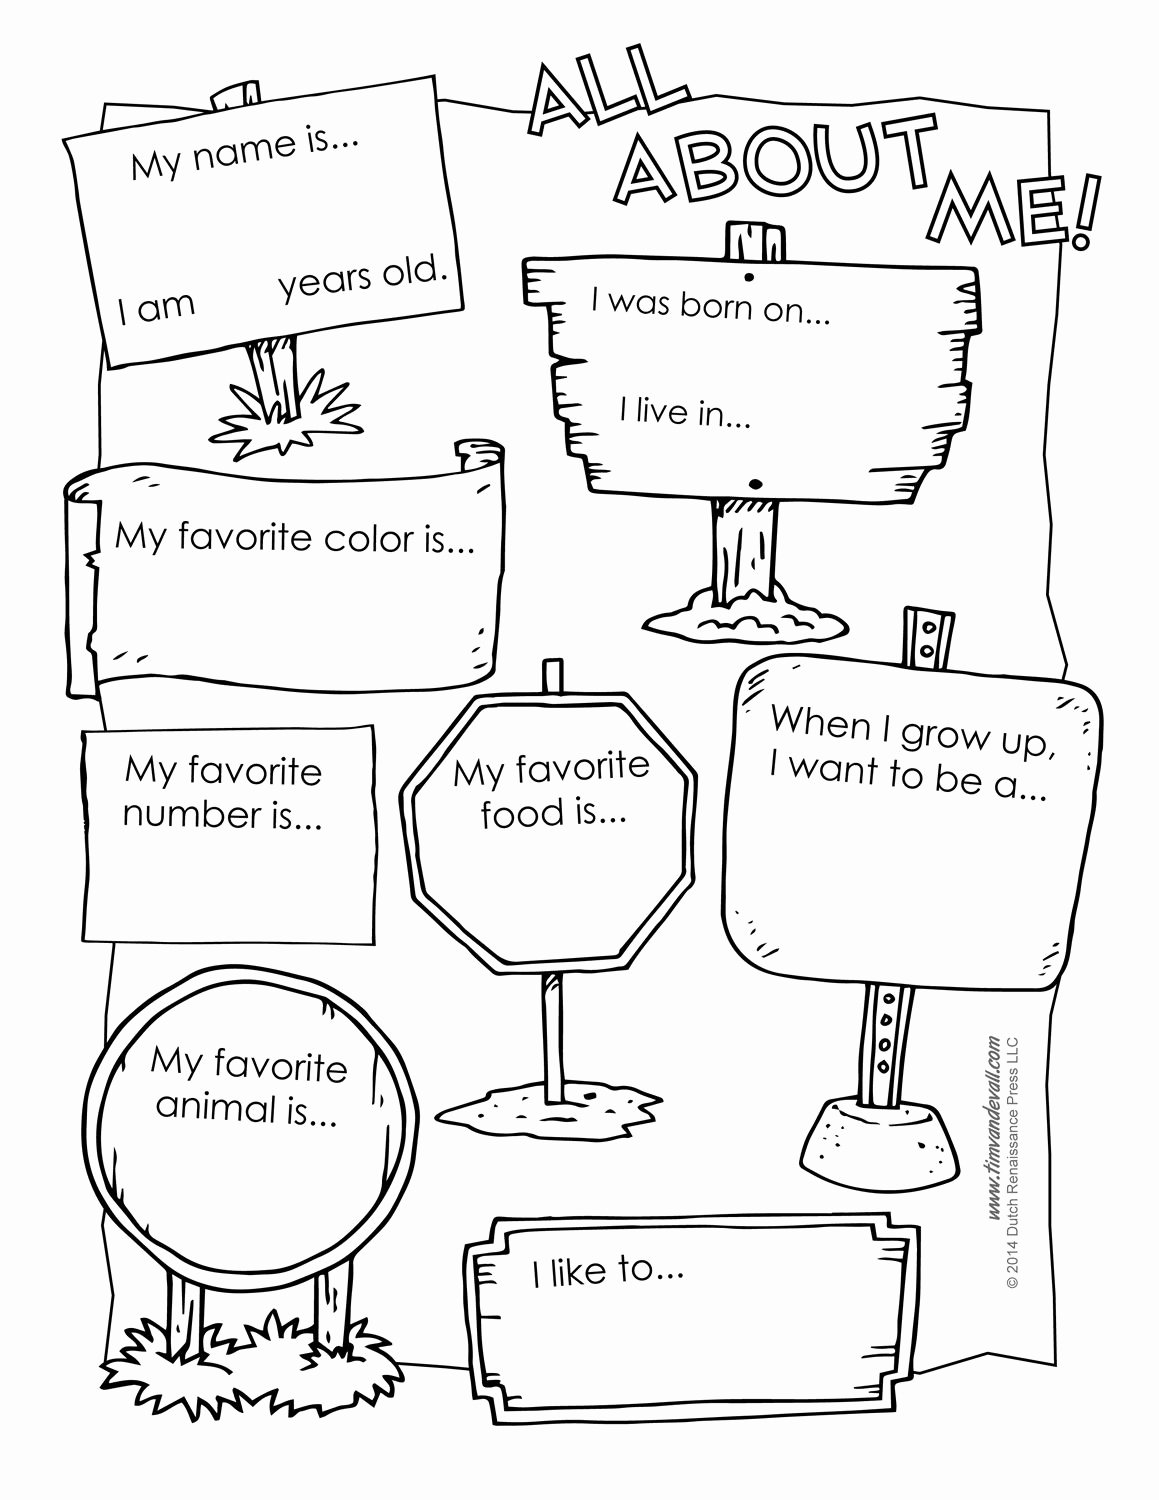 All About Me Worksheet Preschool Inspirational All About Me Preschool Template